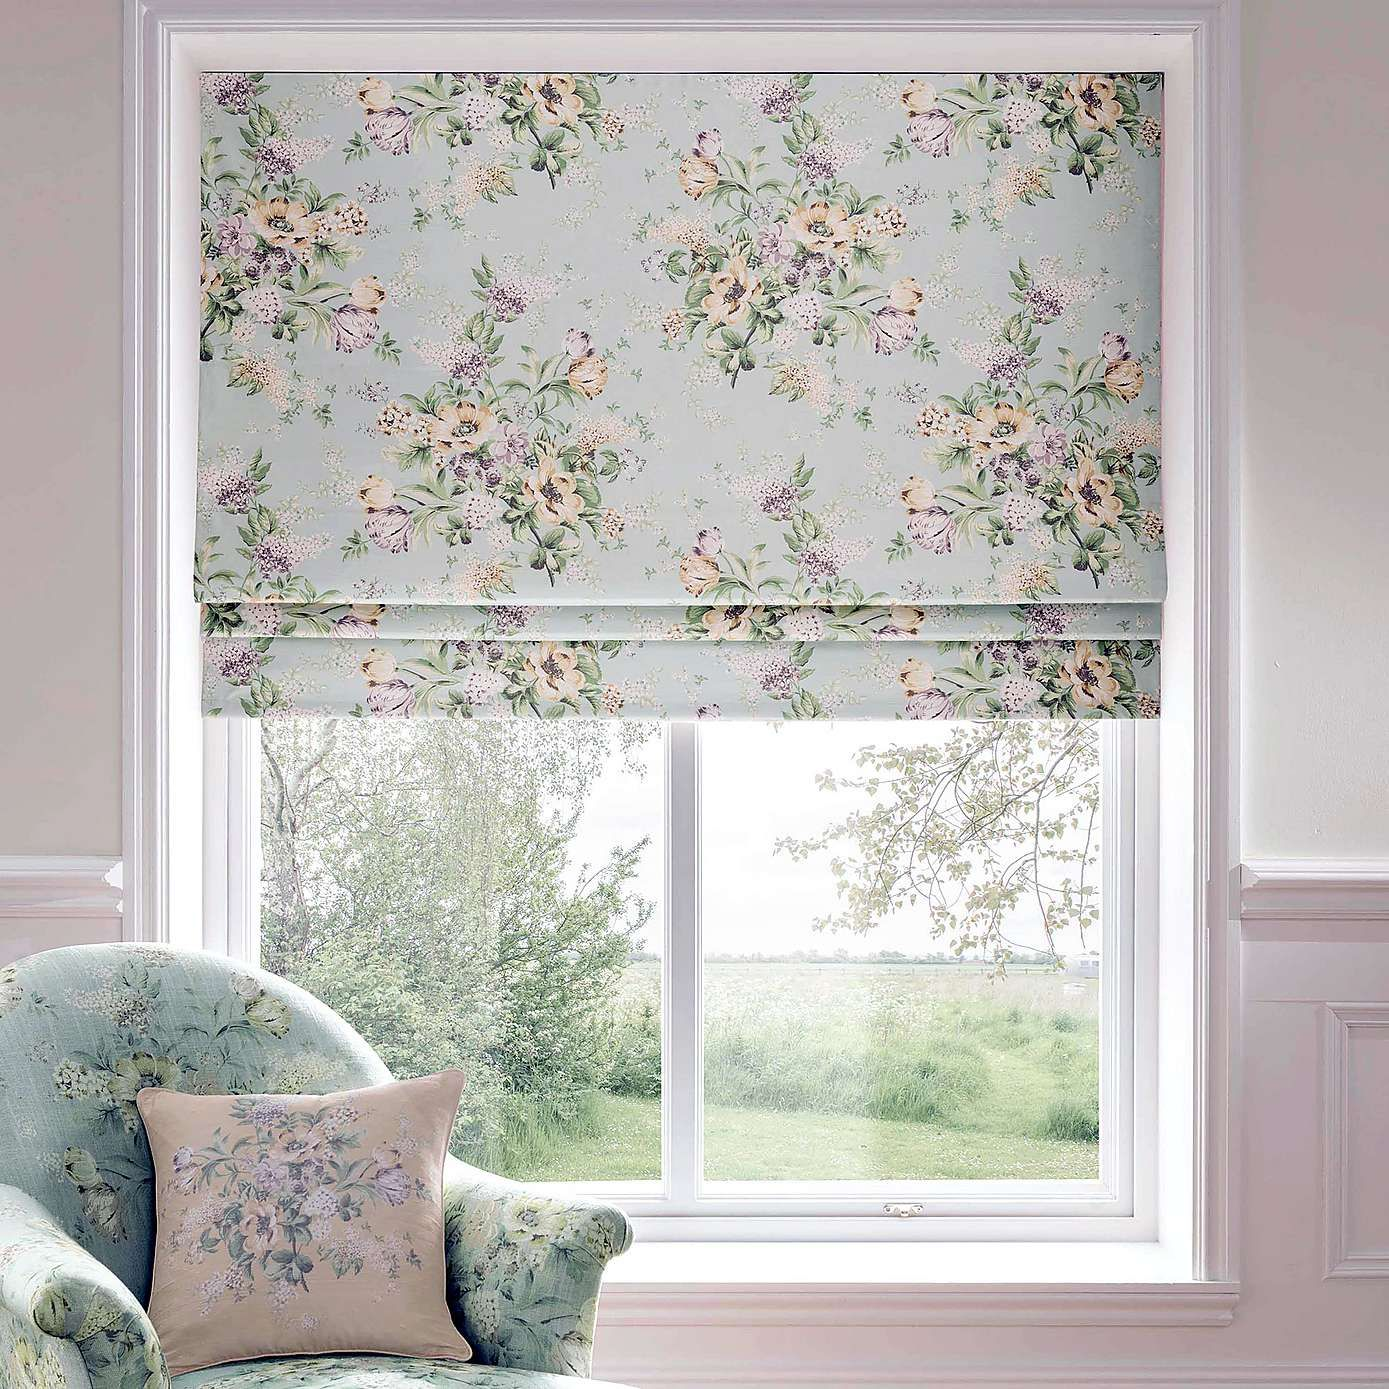 dorma brympton duck egg roman blind dunelm curtains in. Black Bedroom Furniture Sets. Home Design Ideas